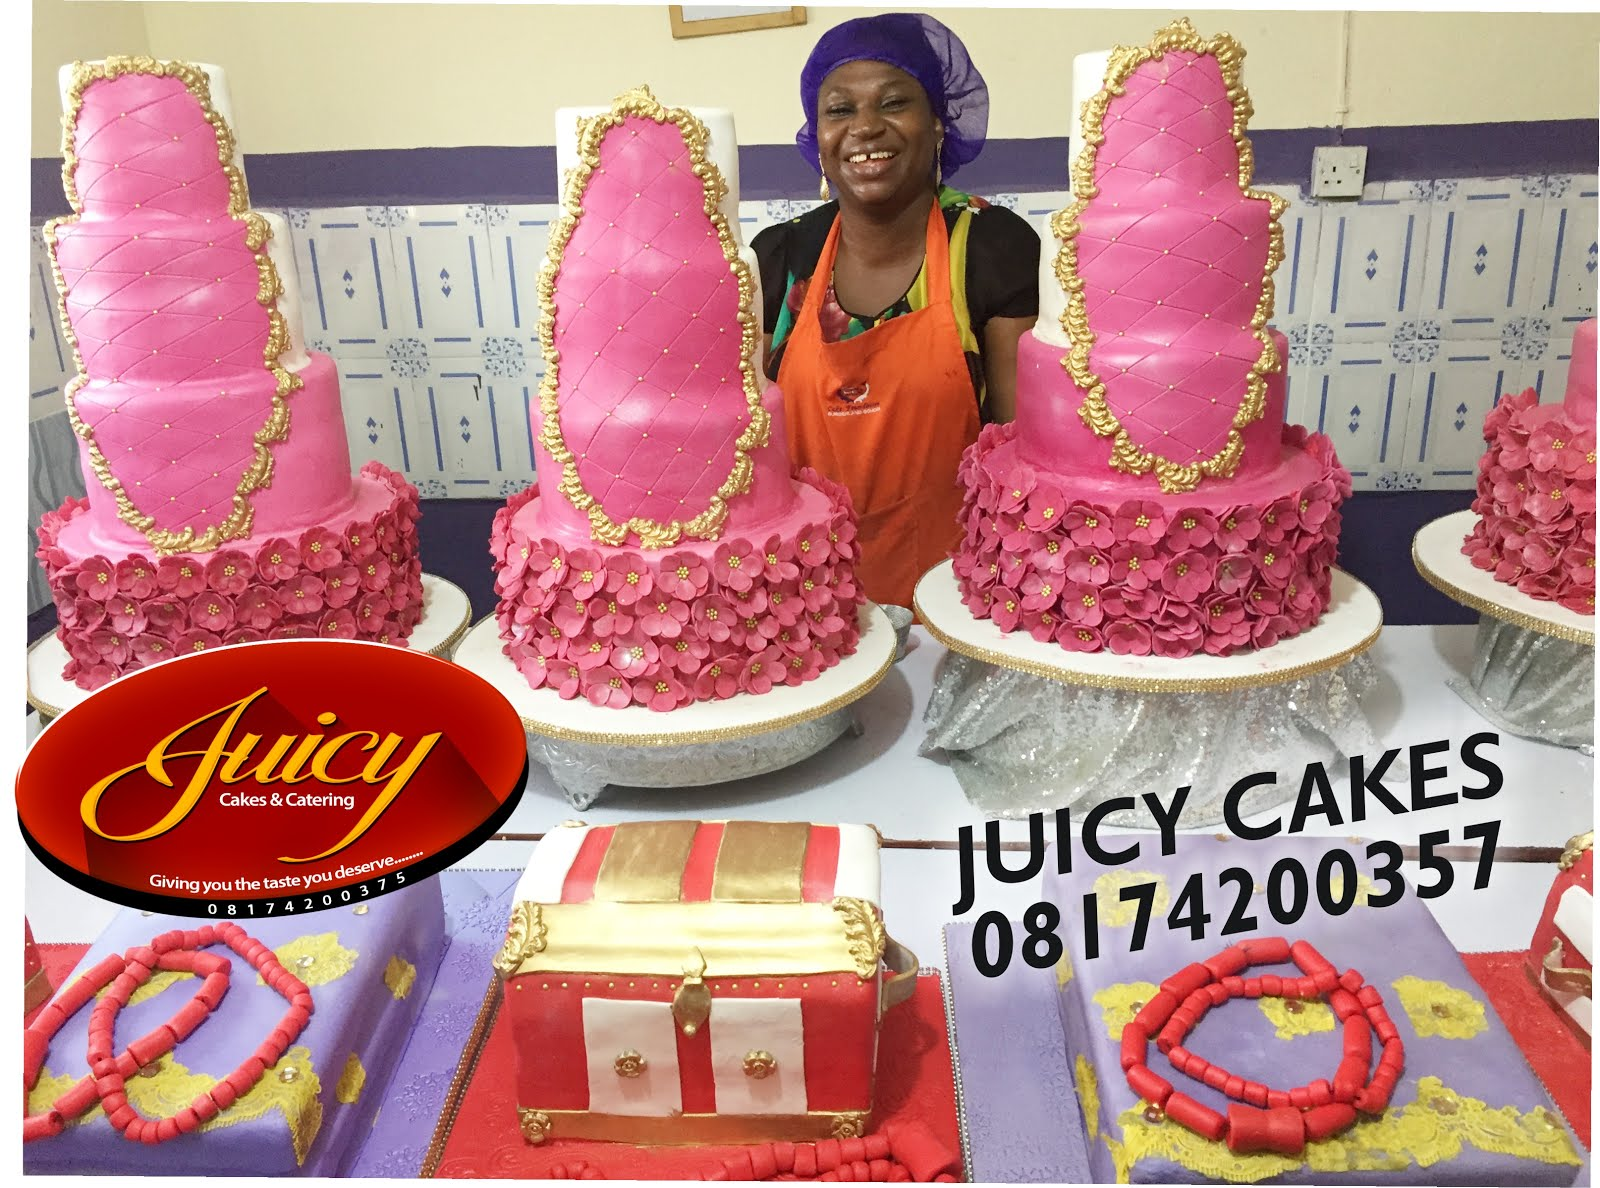 JUICY CAKES & CATERING INTRODUCING CAKE CRAFT SCHOOL COMING UP SOON